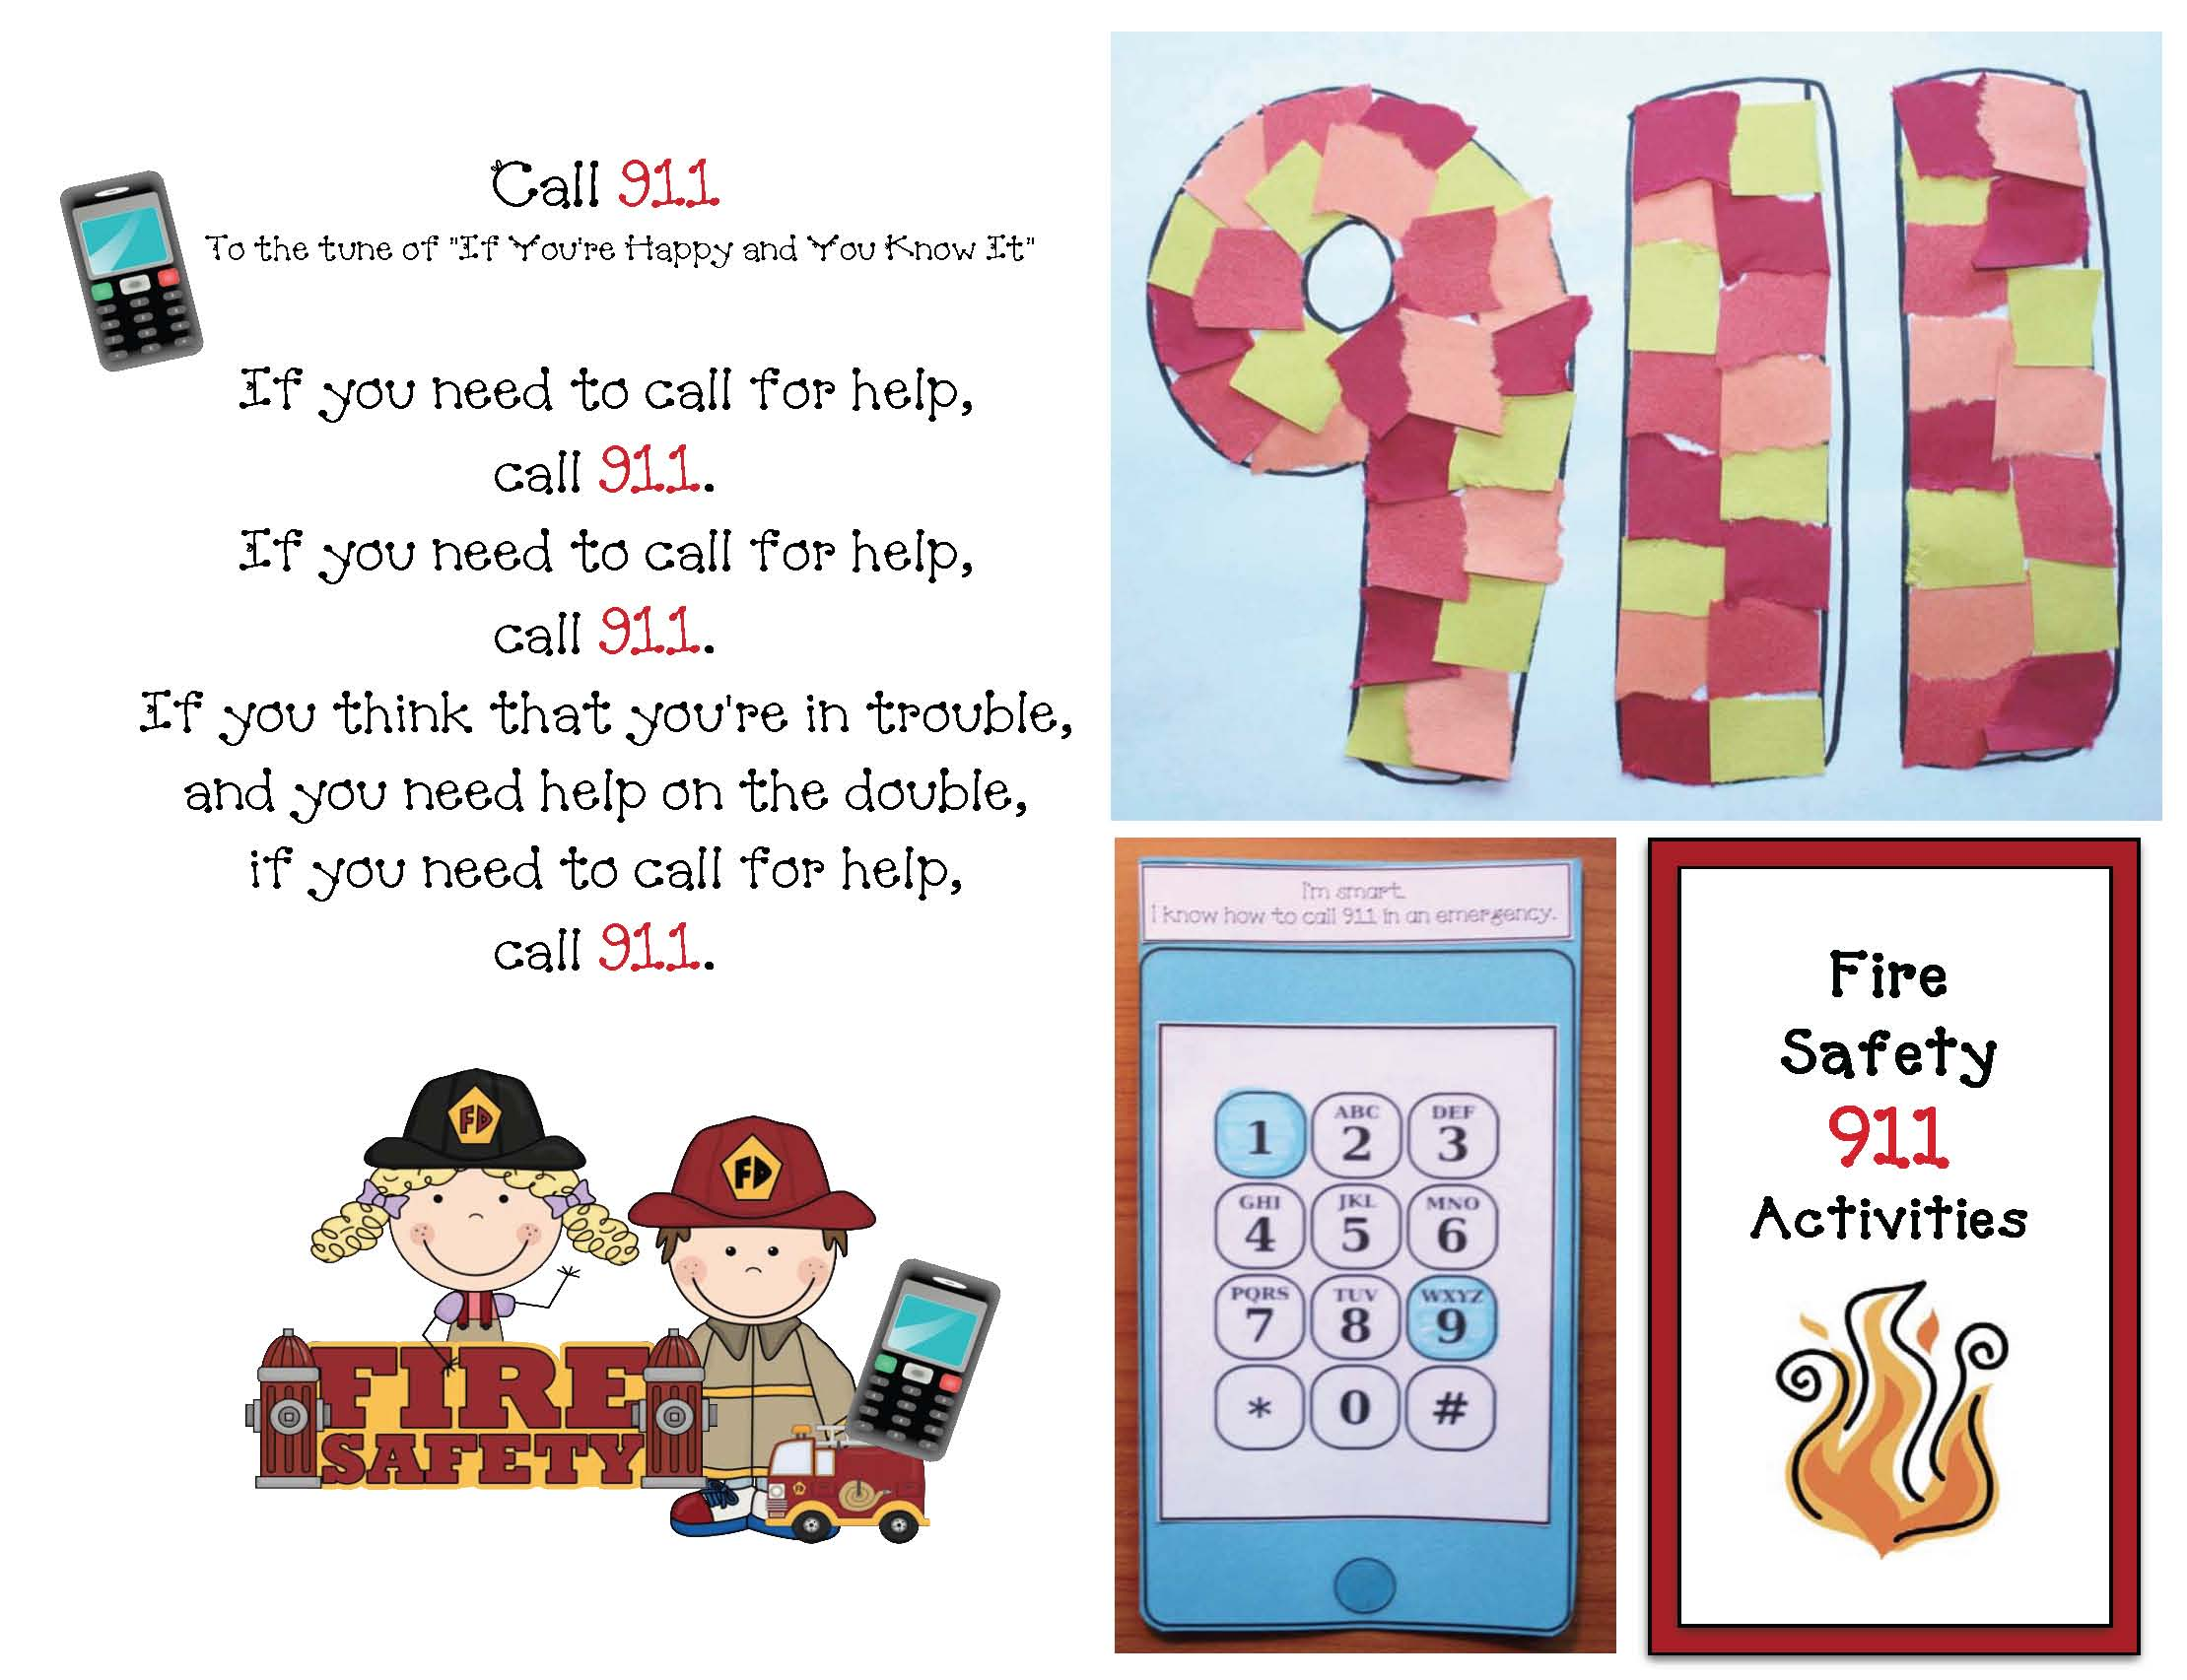 911 activities, fire safety activities, fire safety crafts, dialing 911 crafts, fire safety songs, fire safety crafts